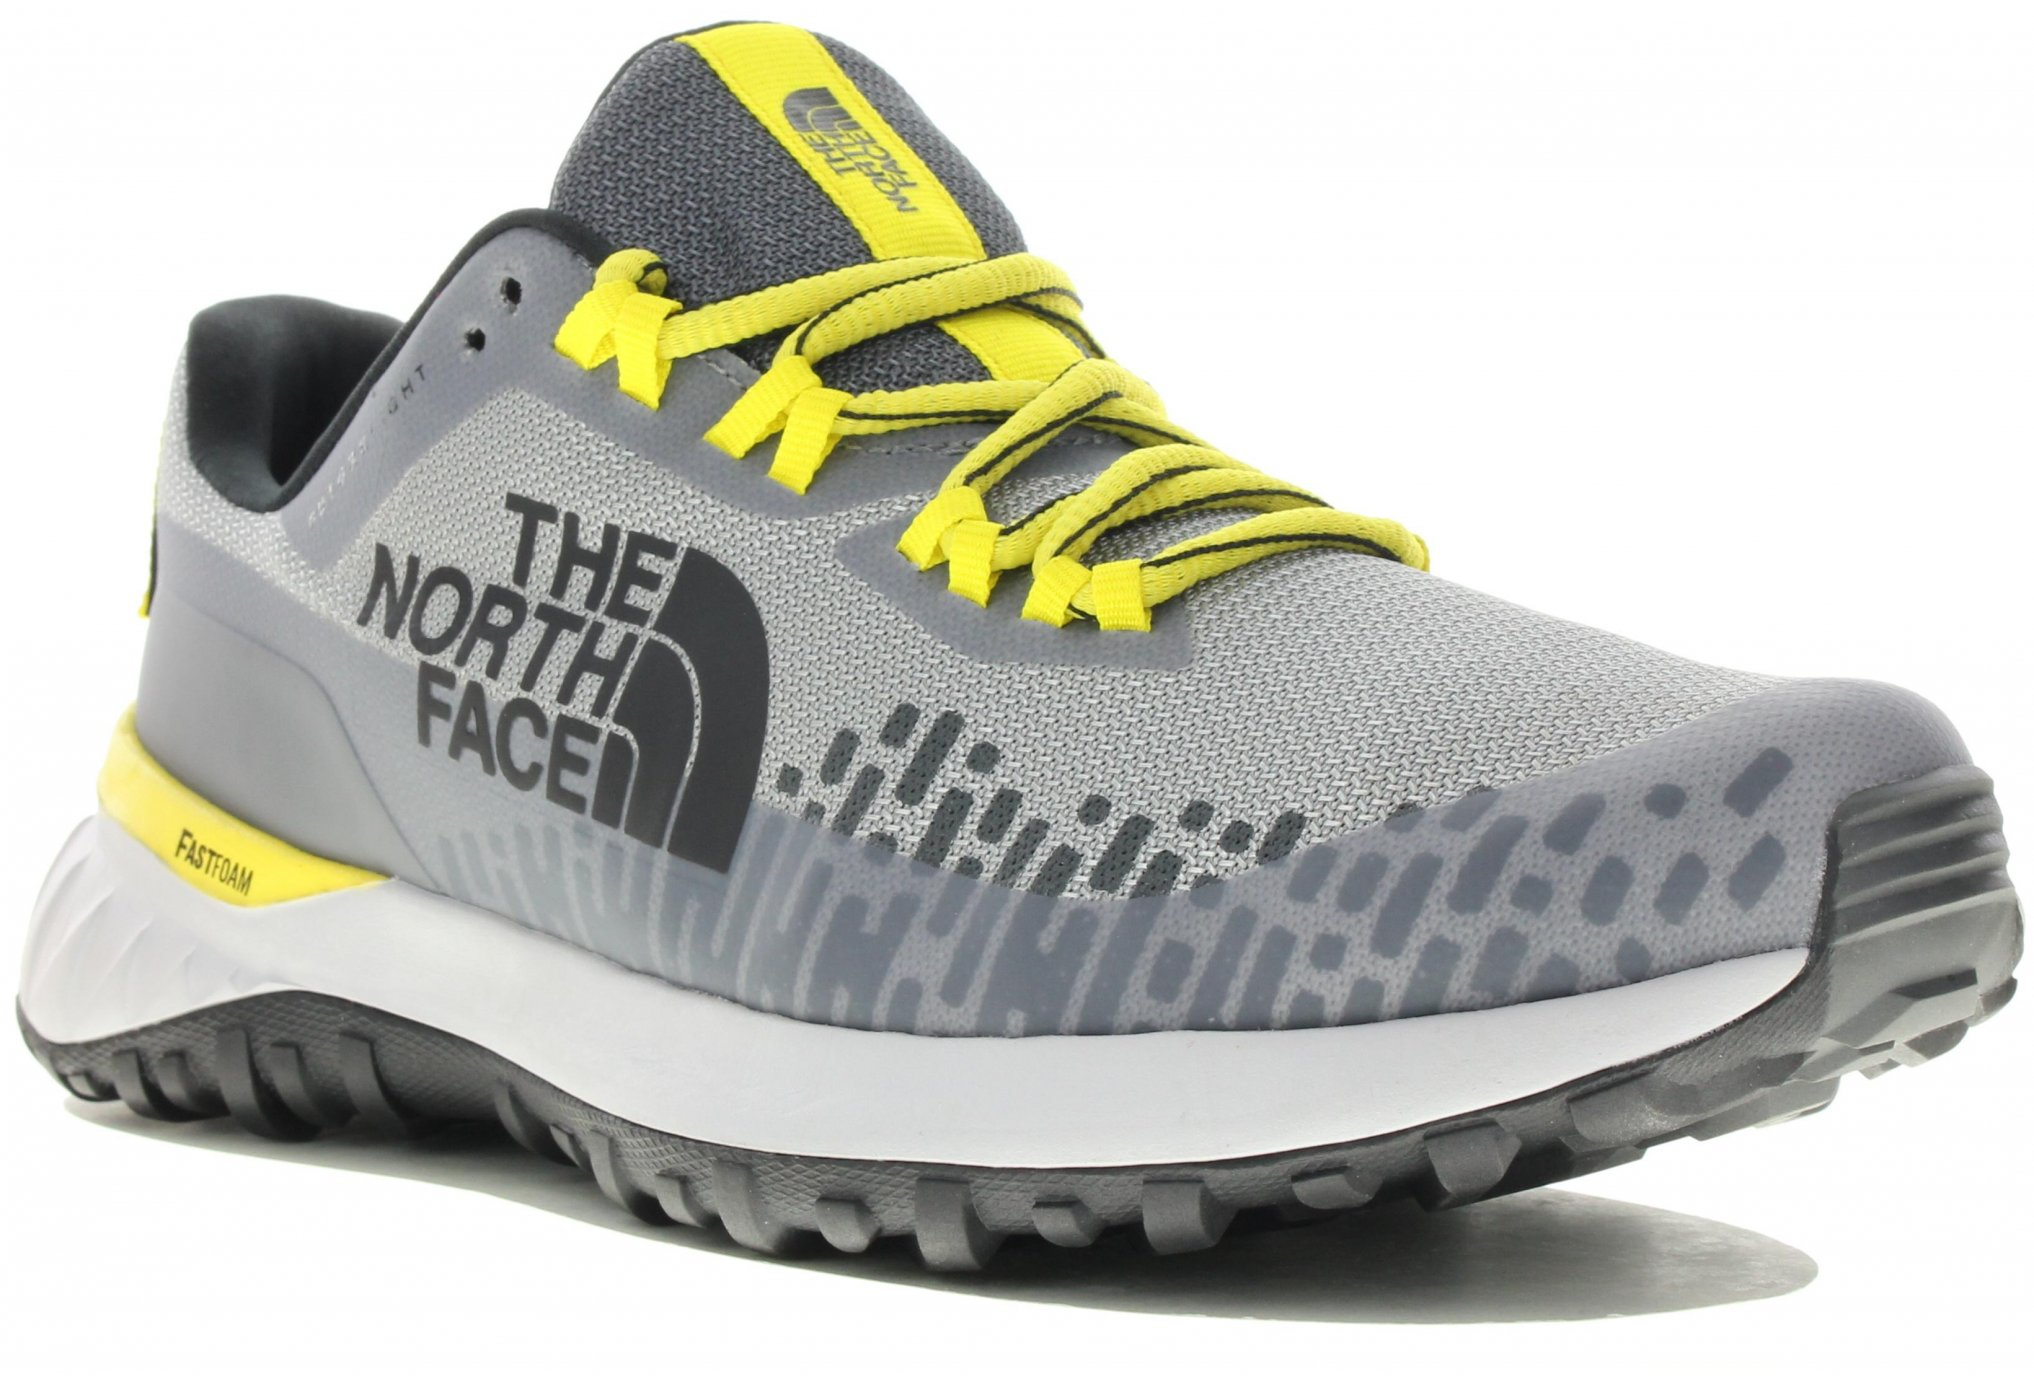 The North Face Ultra Traction FutureLight M Chaussures homme